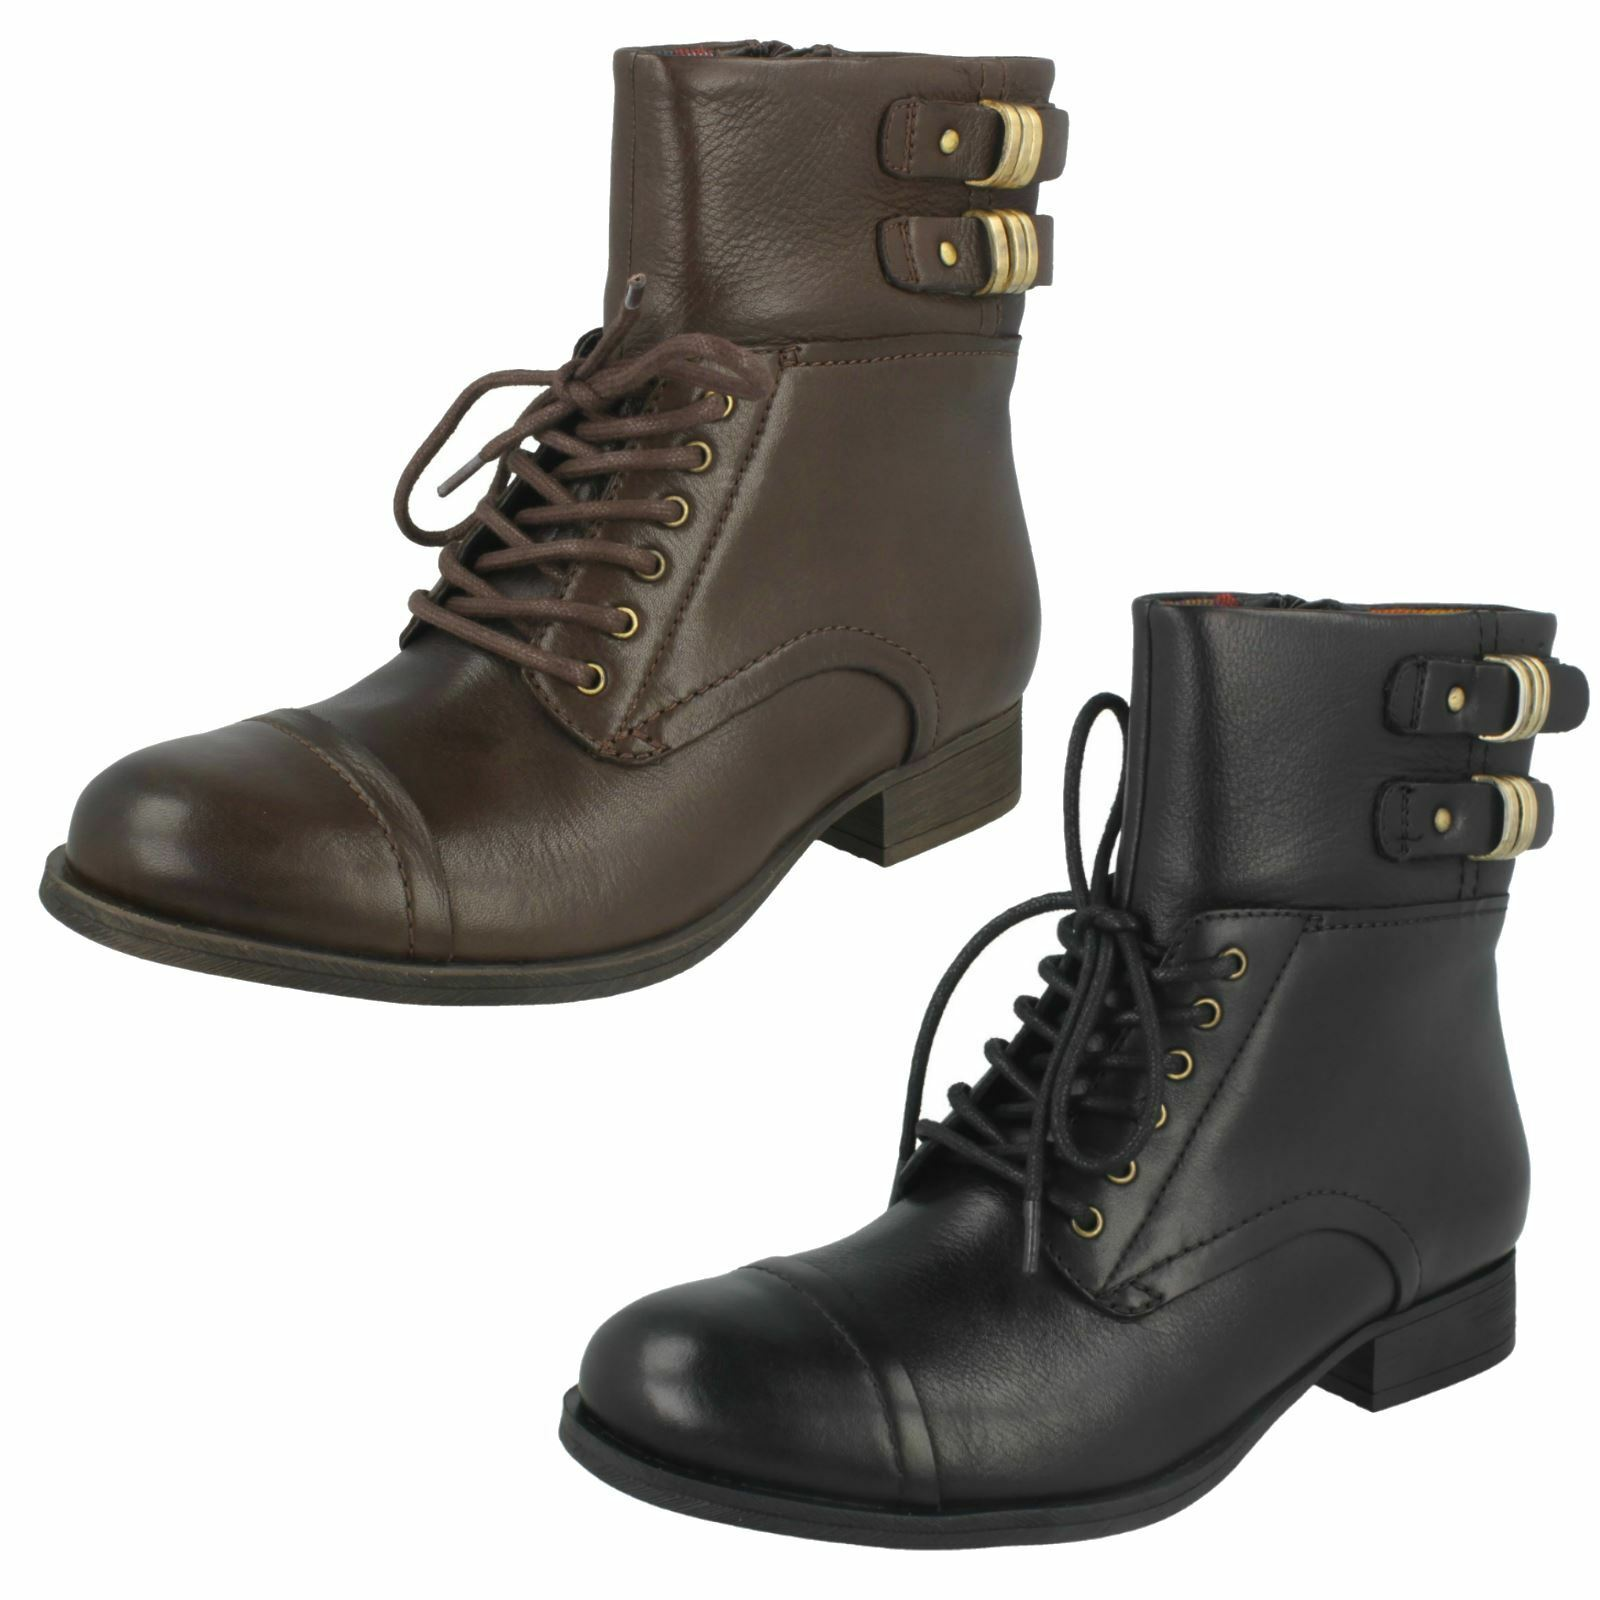 Clarks Ladies Casual Boots Mimic Play